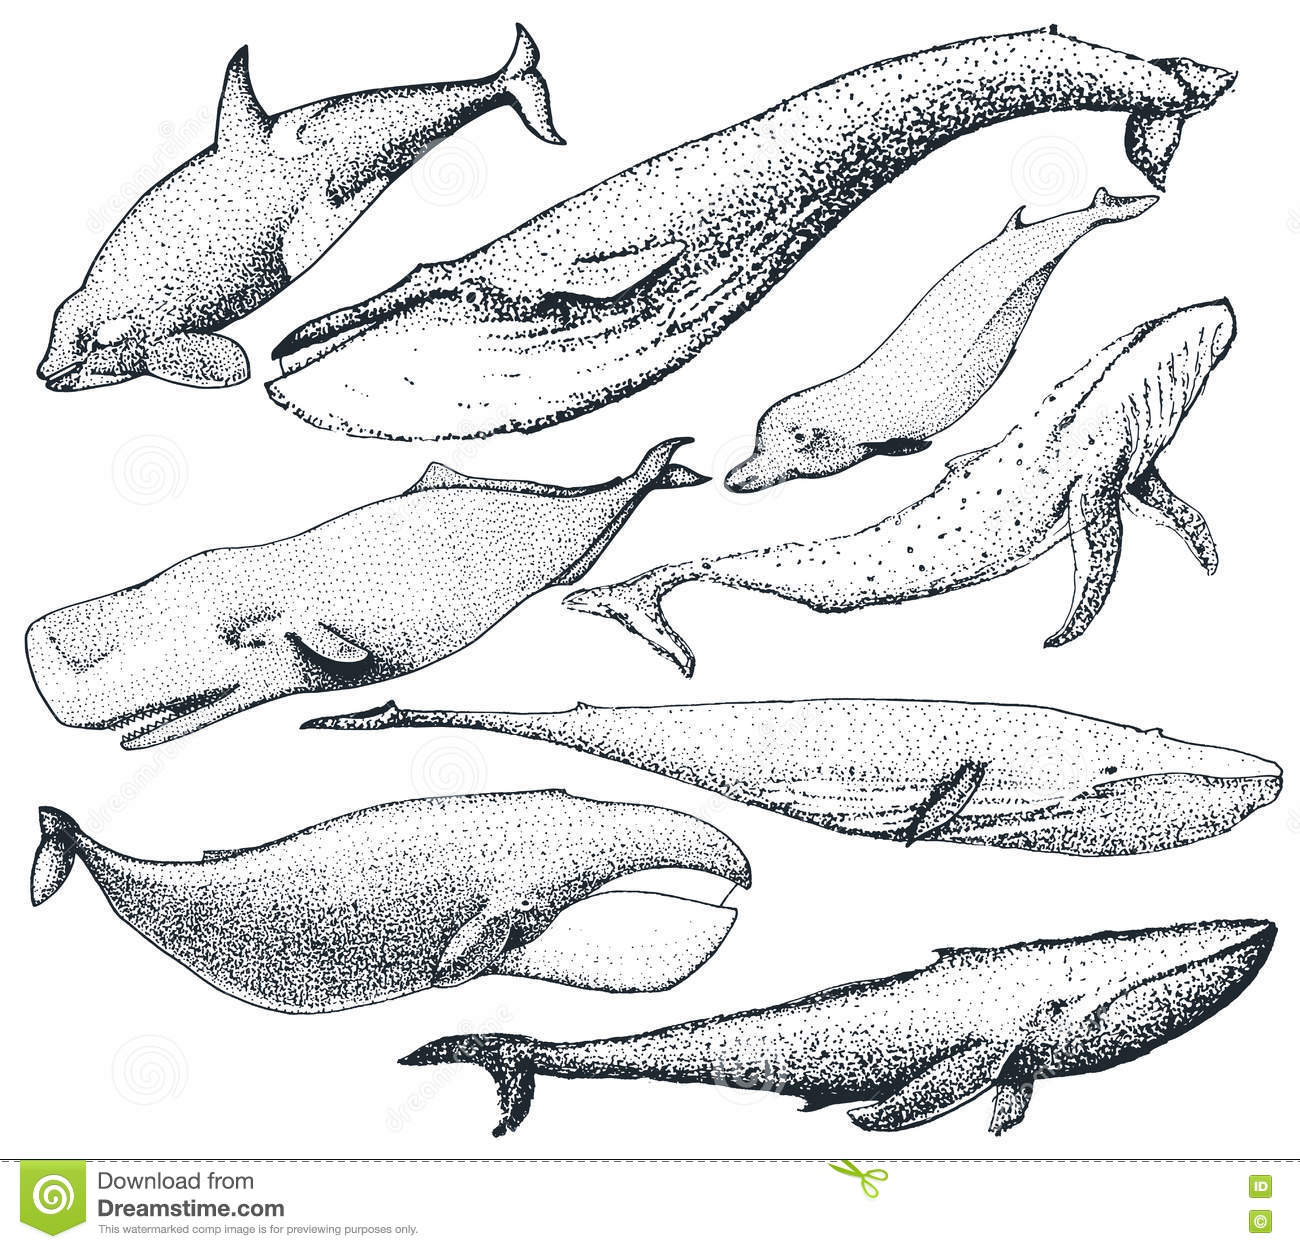 Set of hand drawn whales stock vector. Illustration of print - 78316063